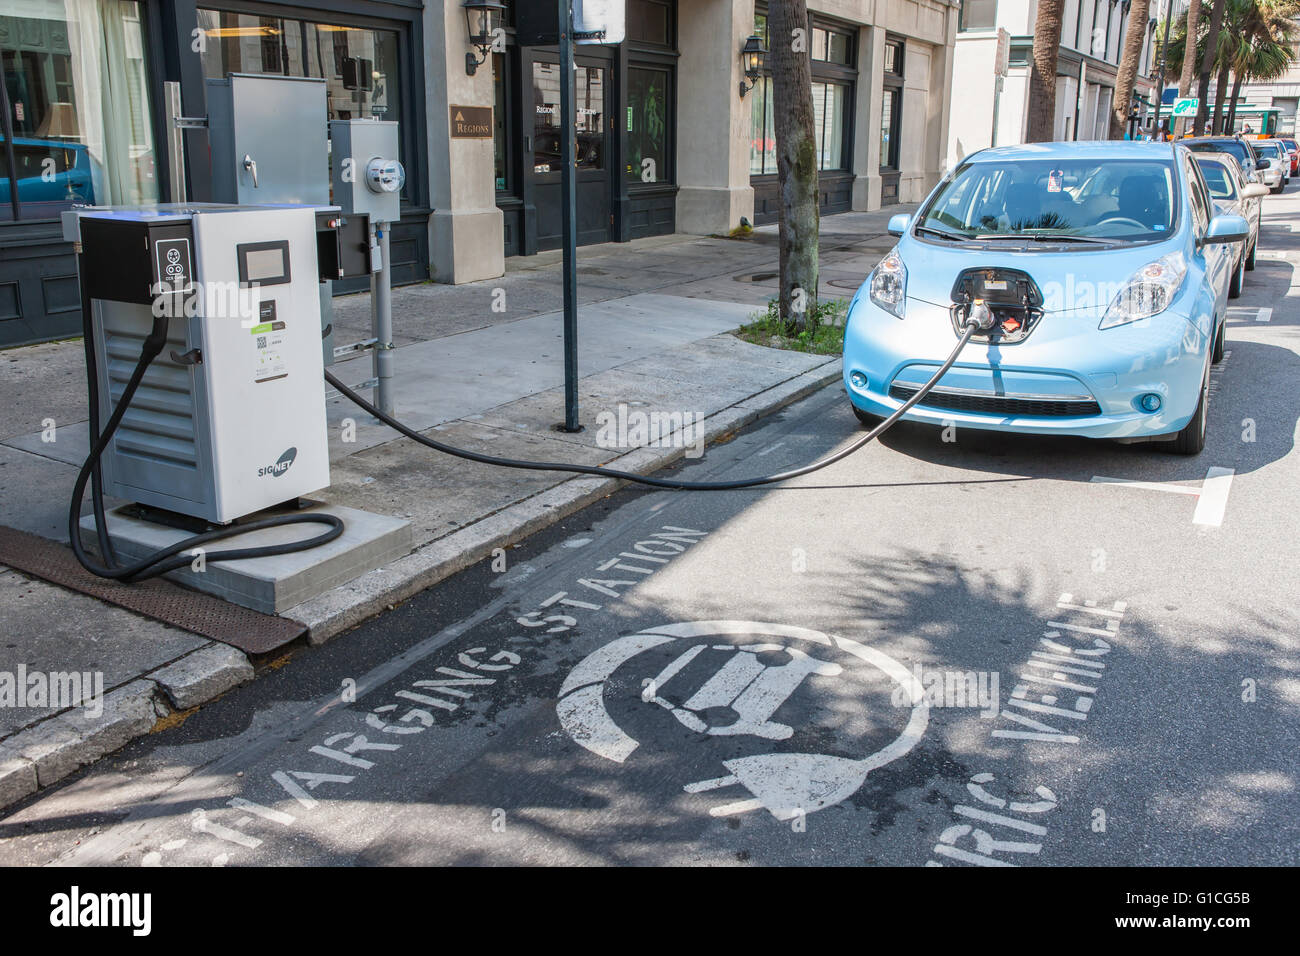 A Nissan Leaf electric car gets a charge from a public SigNet charging station on Bull Street in Savannah, Georgia. Stock Photo